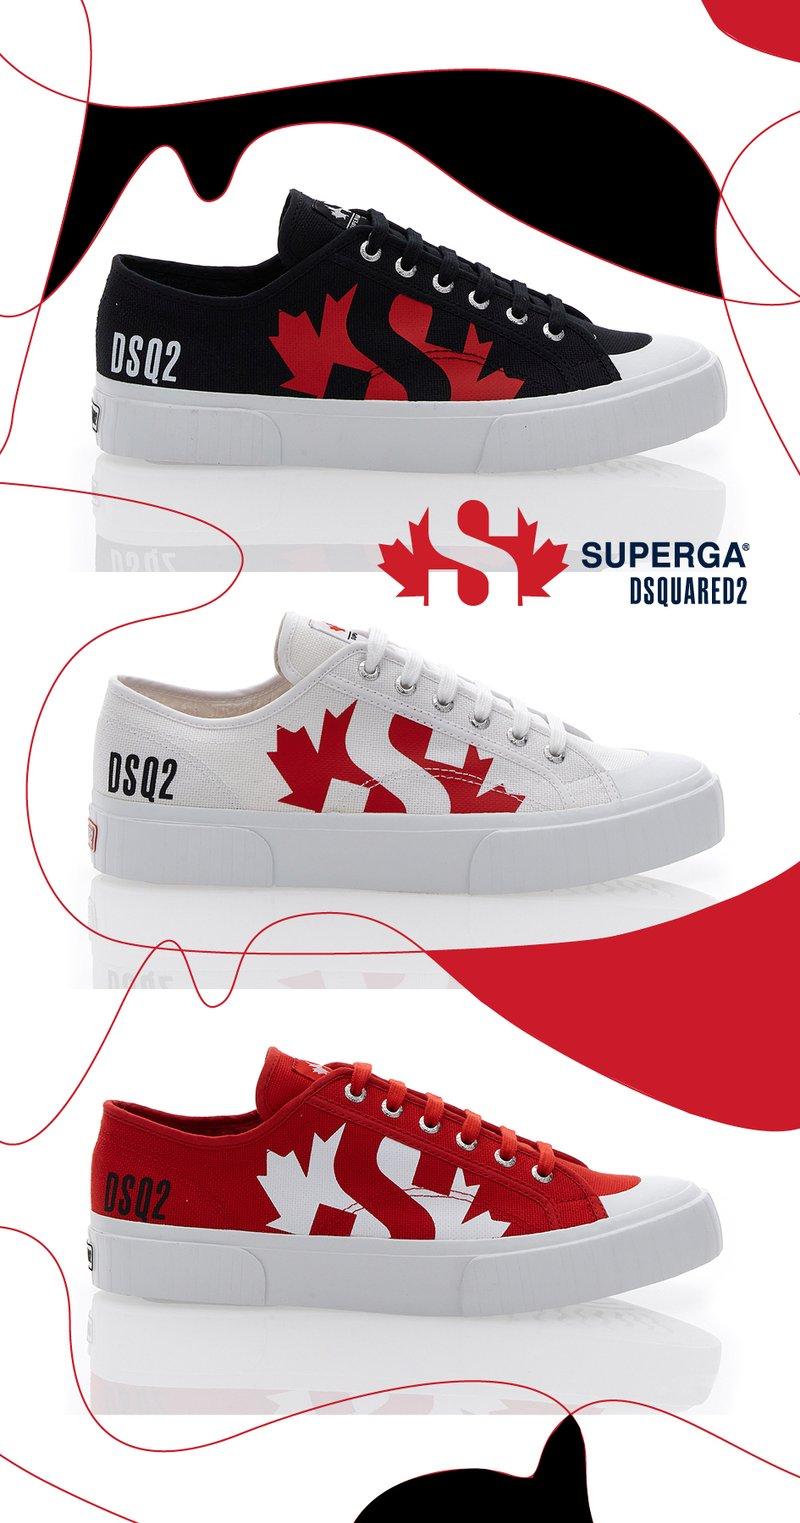 Superga x Dsquared2